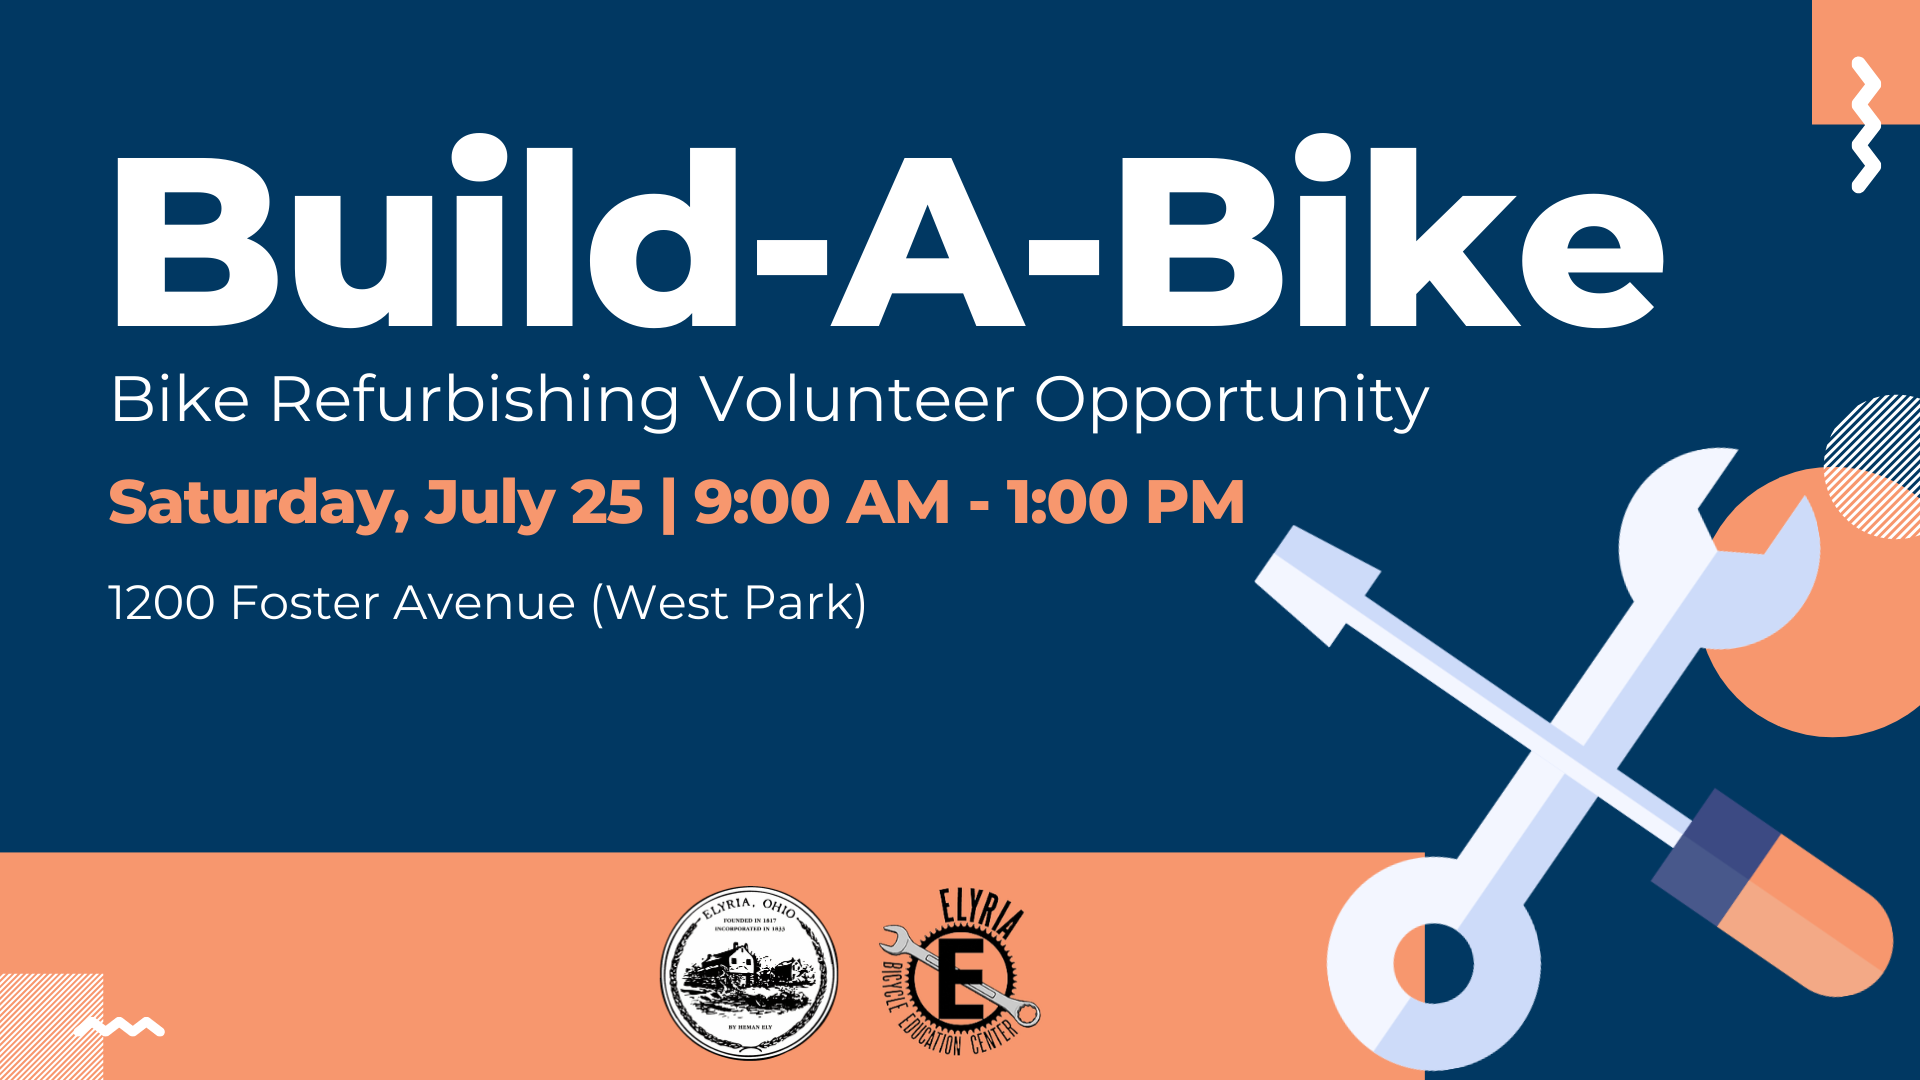 Information about the second Build-A-Bike opportunity